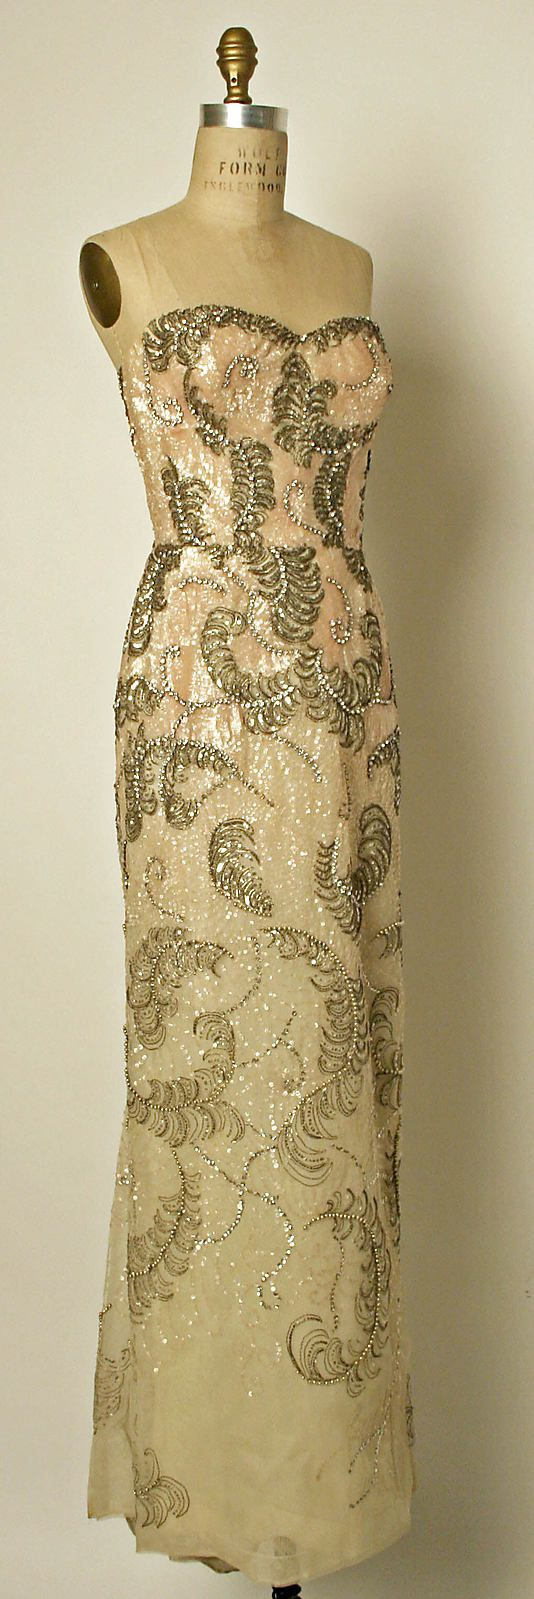 Pierre Balmain Haute Couture evening gown court presentation ensemble from 1953. Made from silk, cotton with embroidered glass bead, rhinestones pearl and sequin with flower floral embroidery in long dress strapless style with a matching stole. House of Balmain.